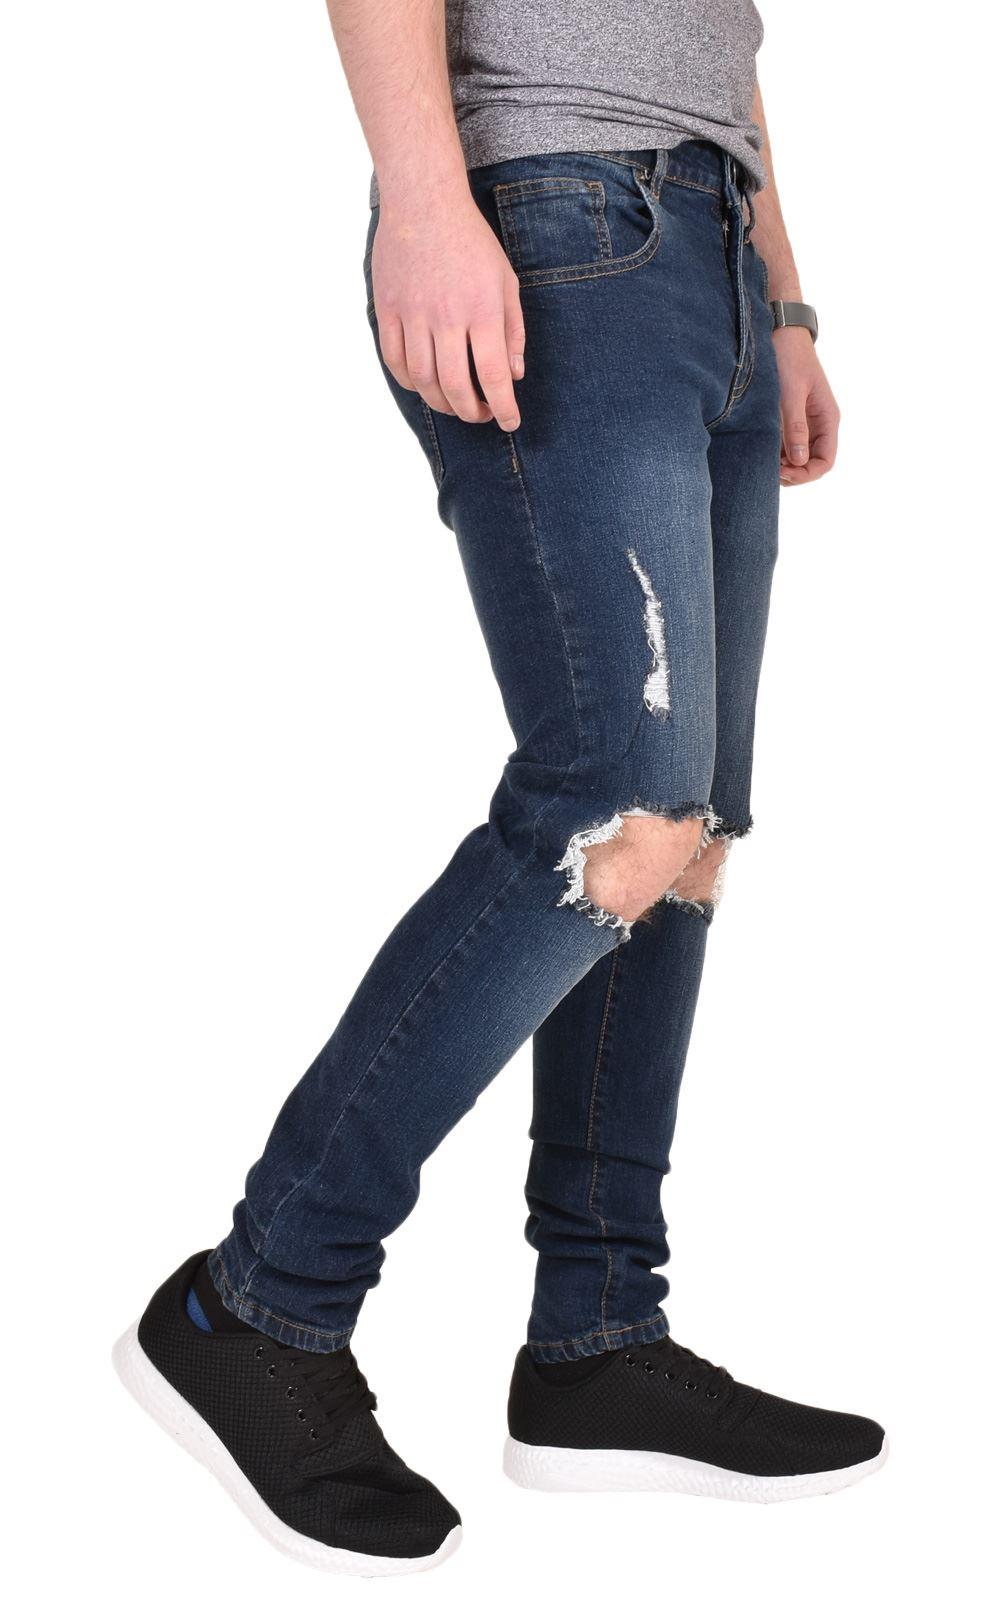 Mens-Ripped-Jeans-Skinny-Slim-Fit-Stretch-Distressed-Denim-Pants-Trousers-28-40 thumbnail 6